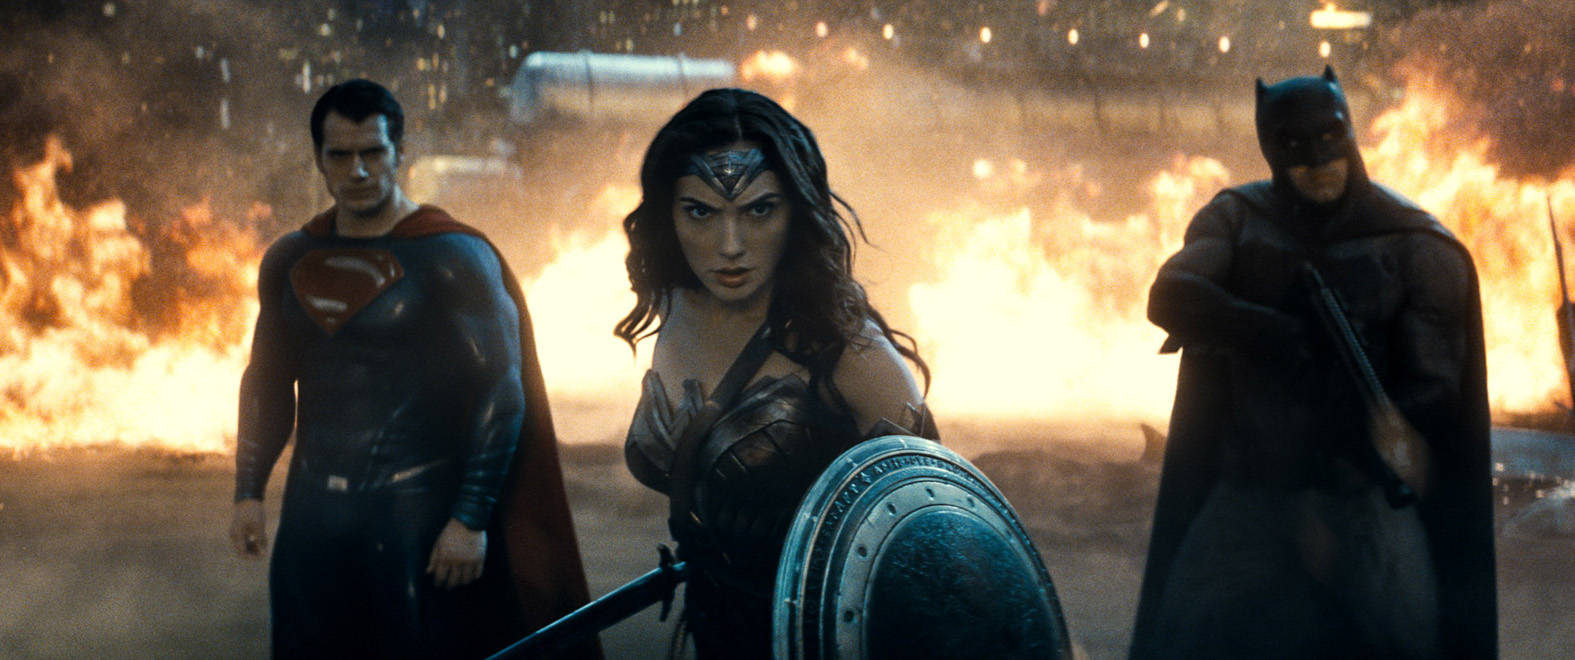 Making up my dang mind about 'Batman v. Superman'